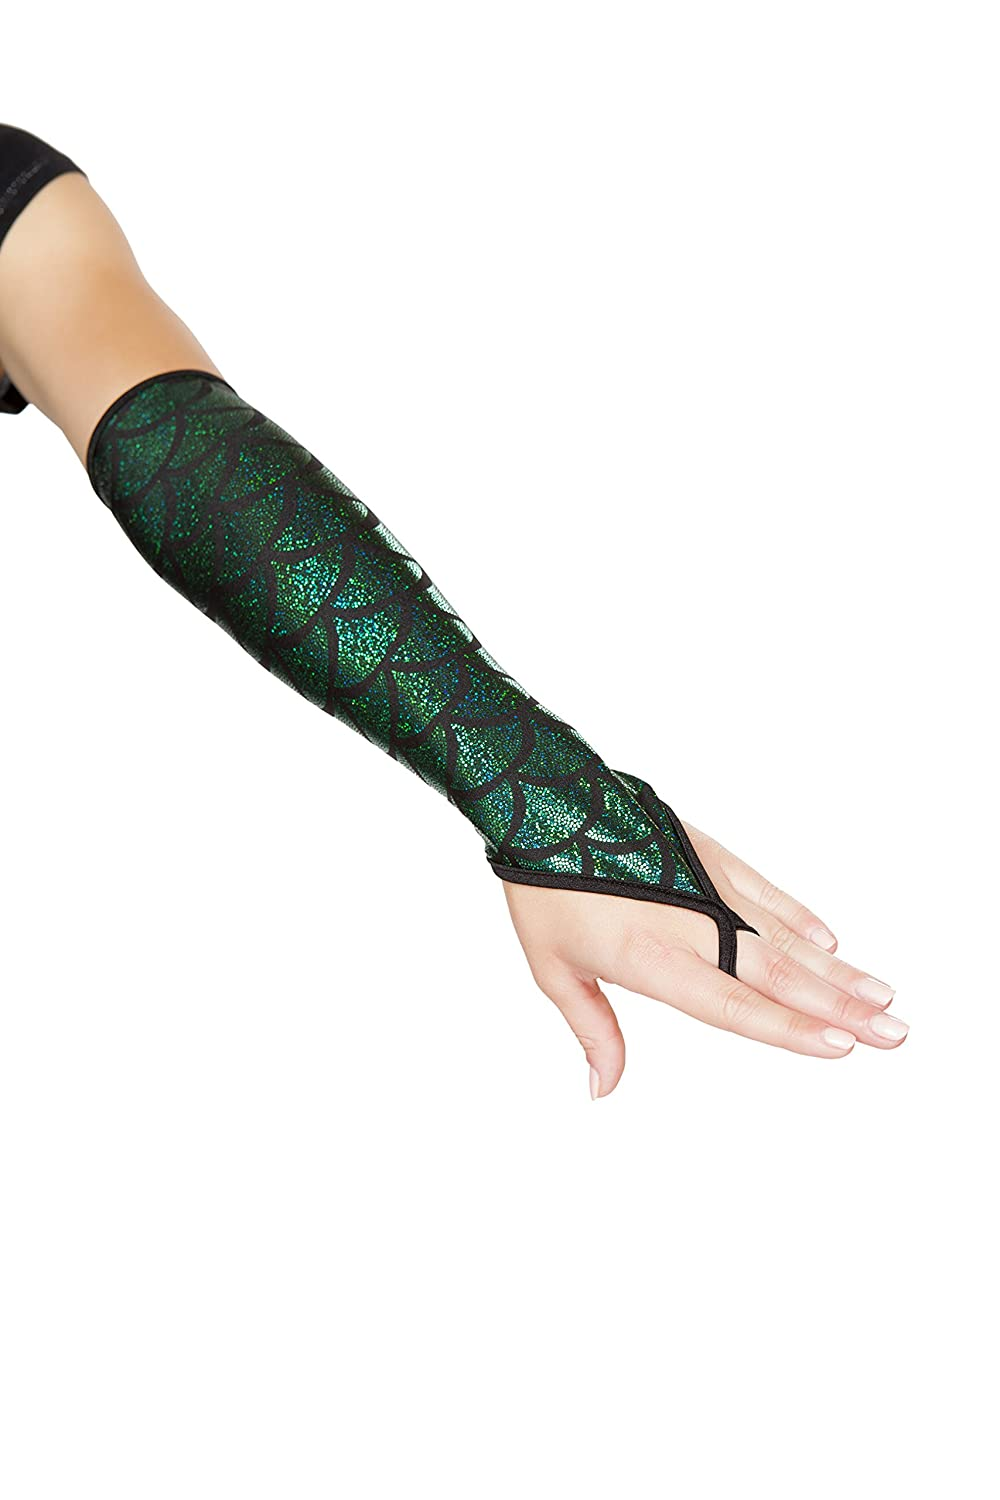 Sexy Women's Shimmery Mermaid Green Fingerless Elbow Length Gloves - DeluxeAdultCostumes.com